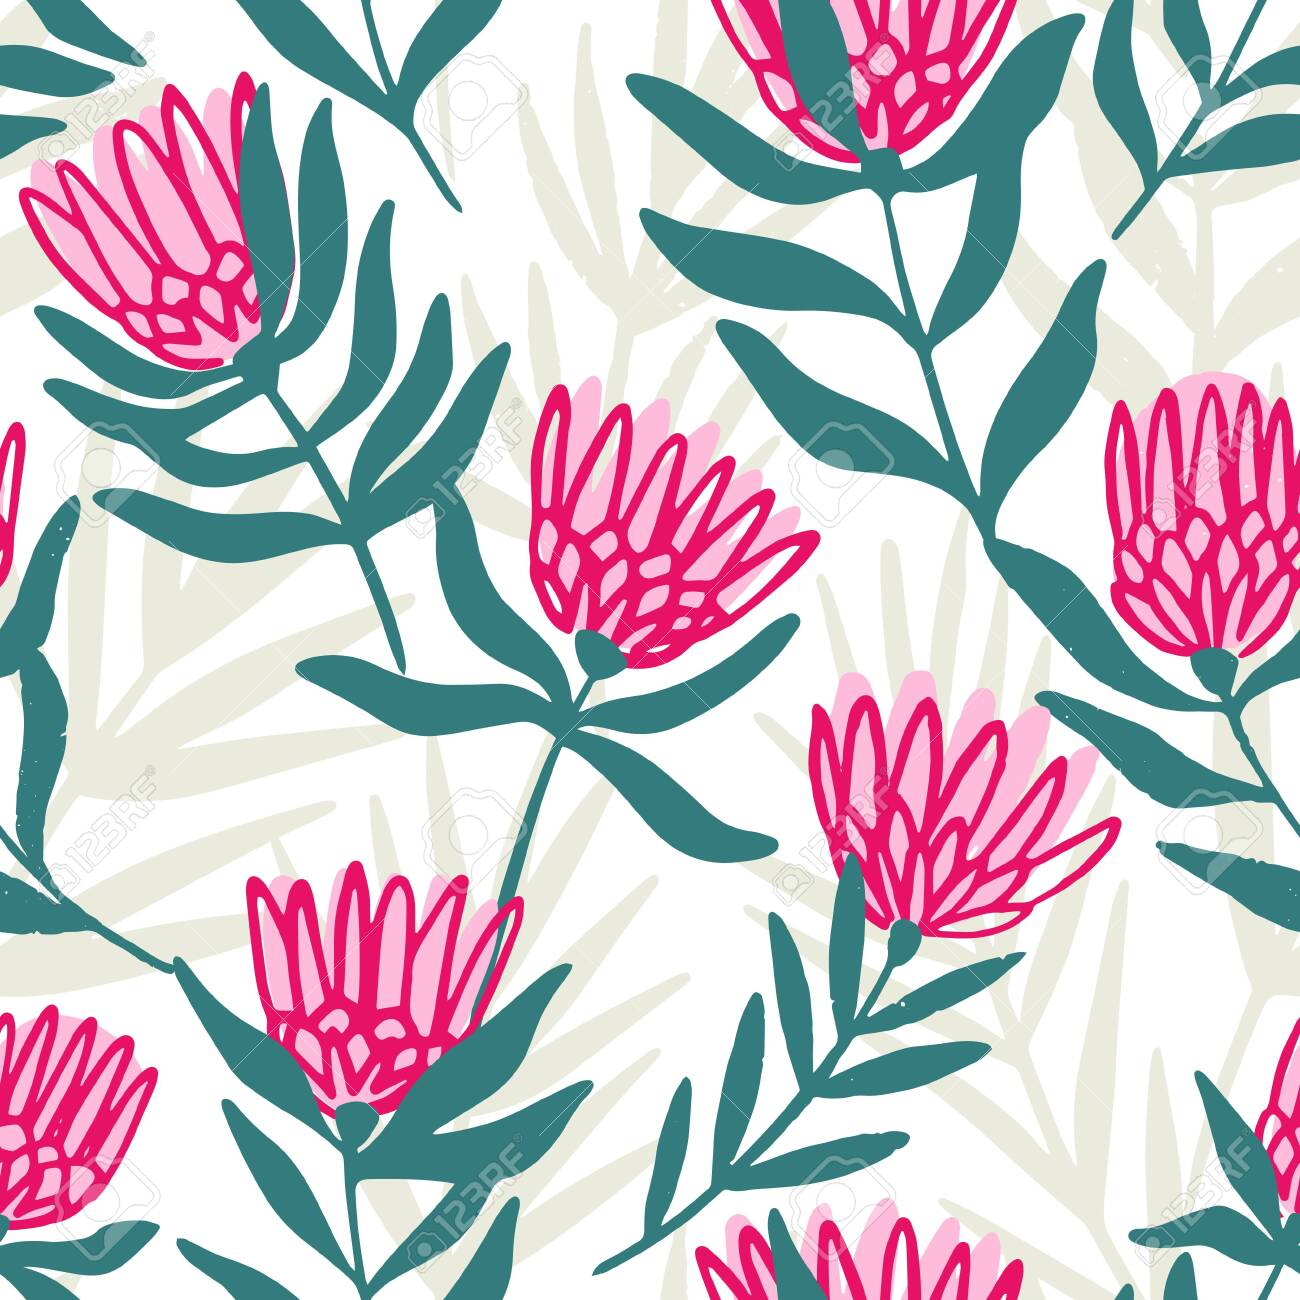 Protea and eucalyptus leaves pattern. Seamless motif for wrapping, wallpaper, fabric, decoration print. Vector illustration - 144271355